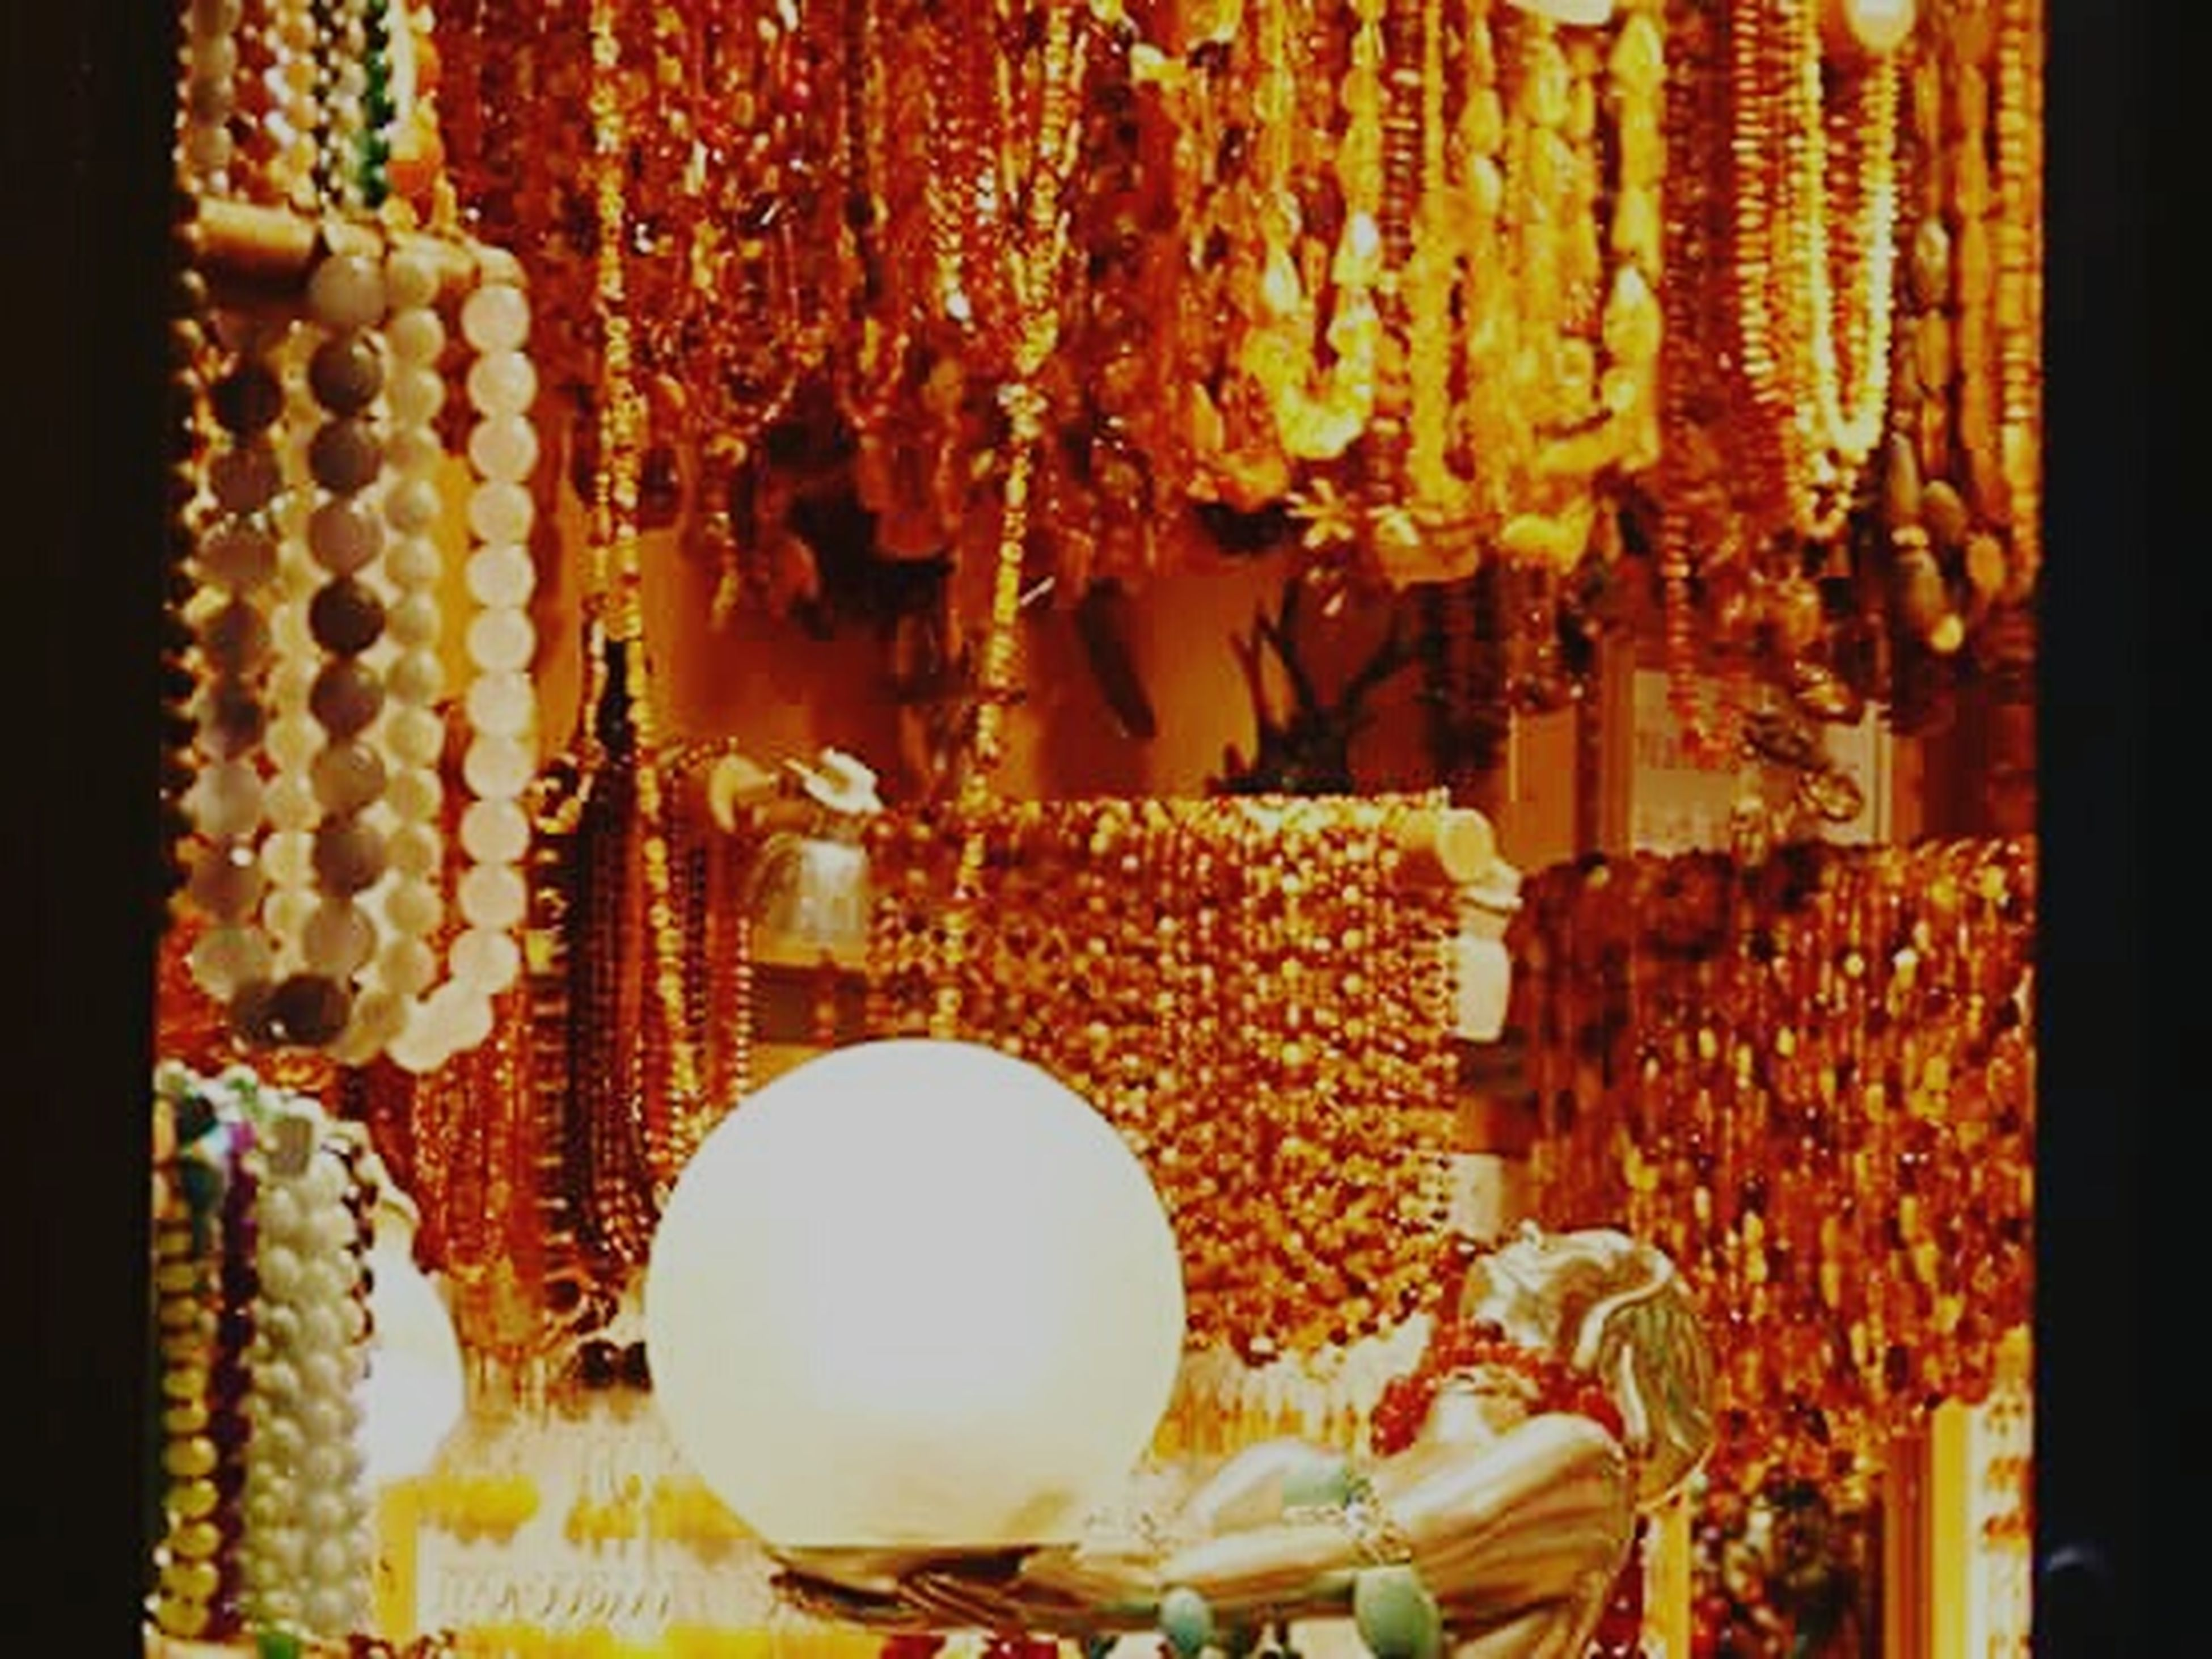 decoration, still life, retail, ornate, variation, large group of objects, cultures, abundance, decor, no people, close-up, store, illuminated, choice, arrangement, textile, shop, collection, display